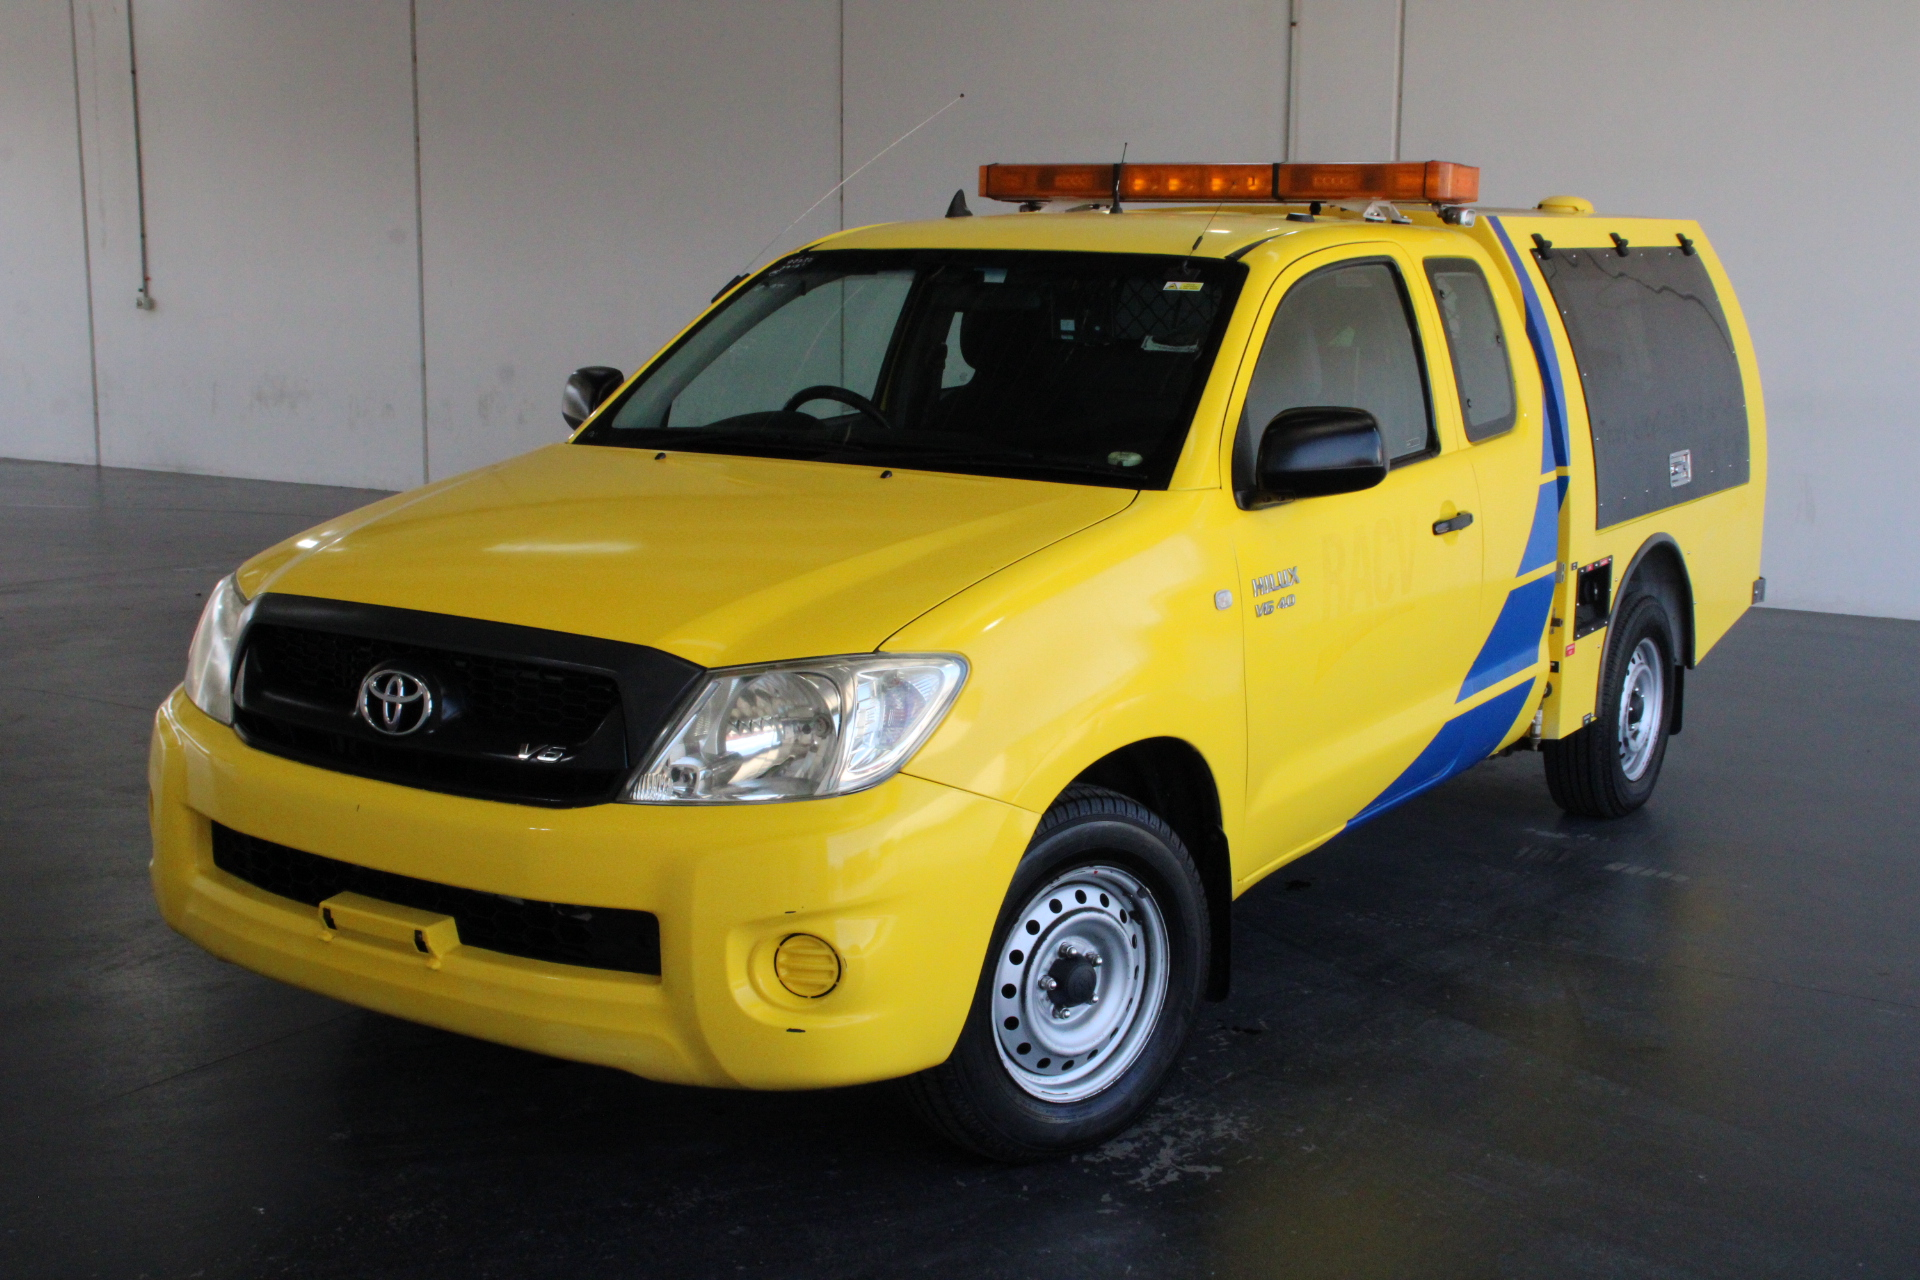 2009 Toyota Hilux SR GGN15R Dual Fuel Automatic Ute